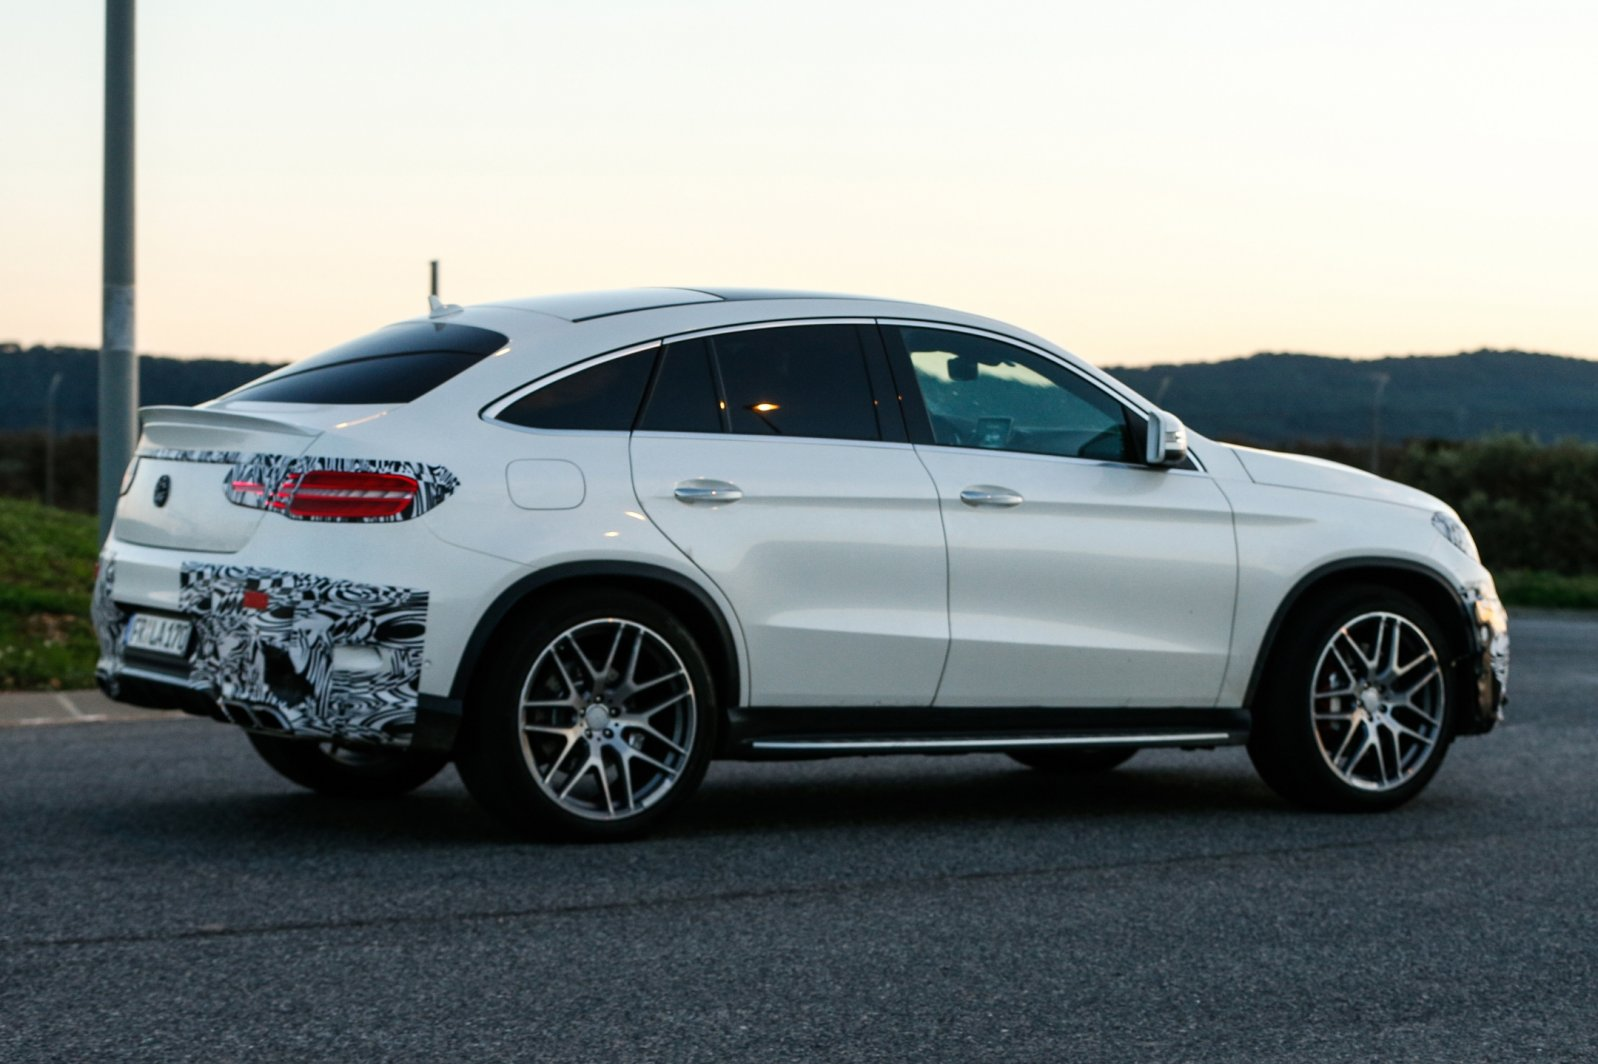 2018 Mercedes Benz S63 AMG Coupe photo - 1